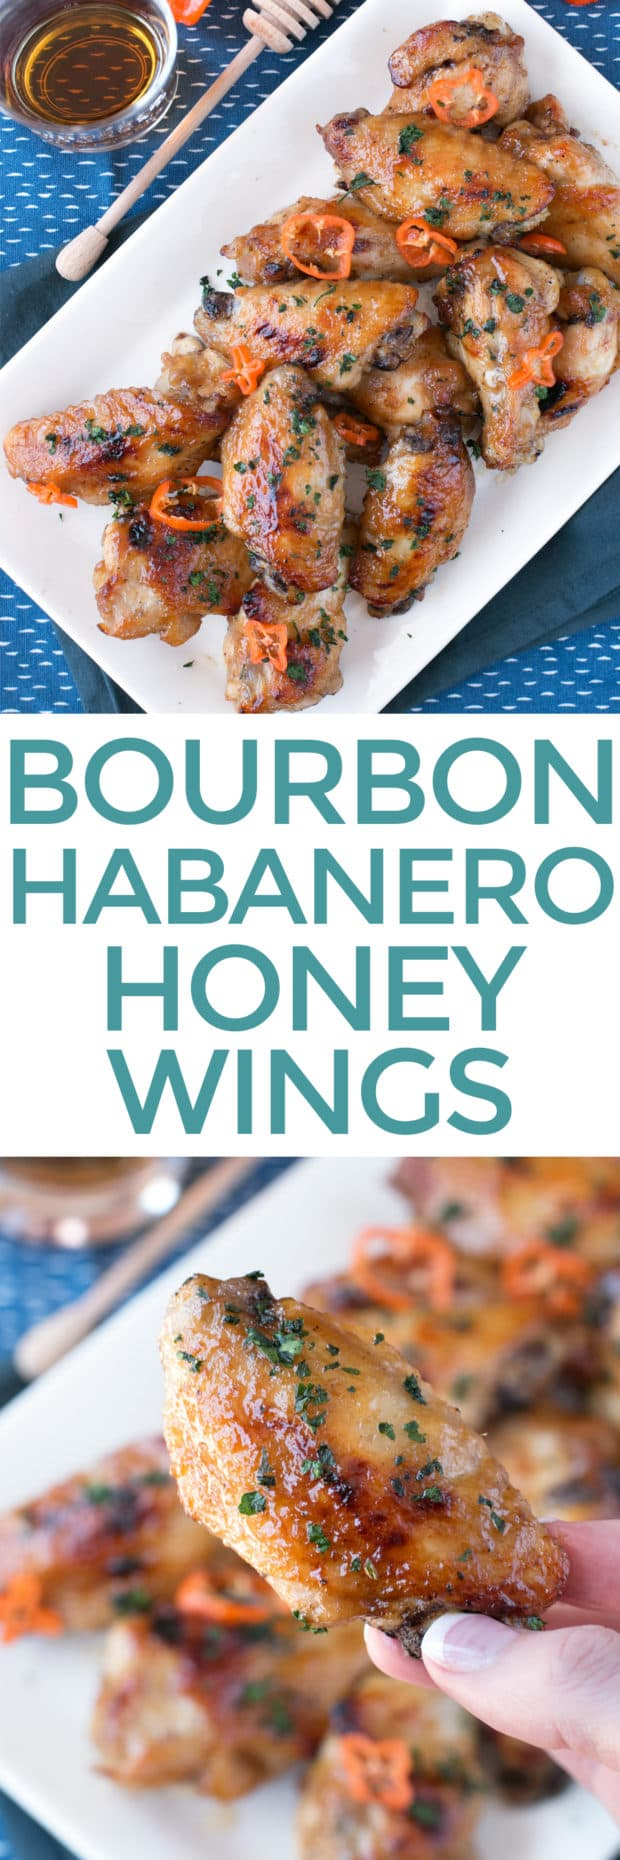 Bourbon Habanero Honey Chicken Wings | cakenknife.com #snack #appetizer #baked